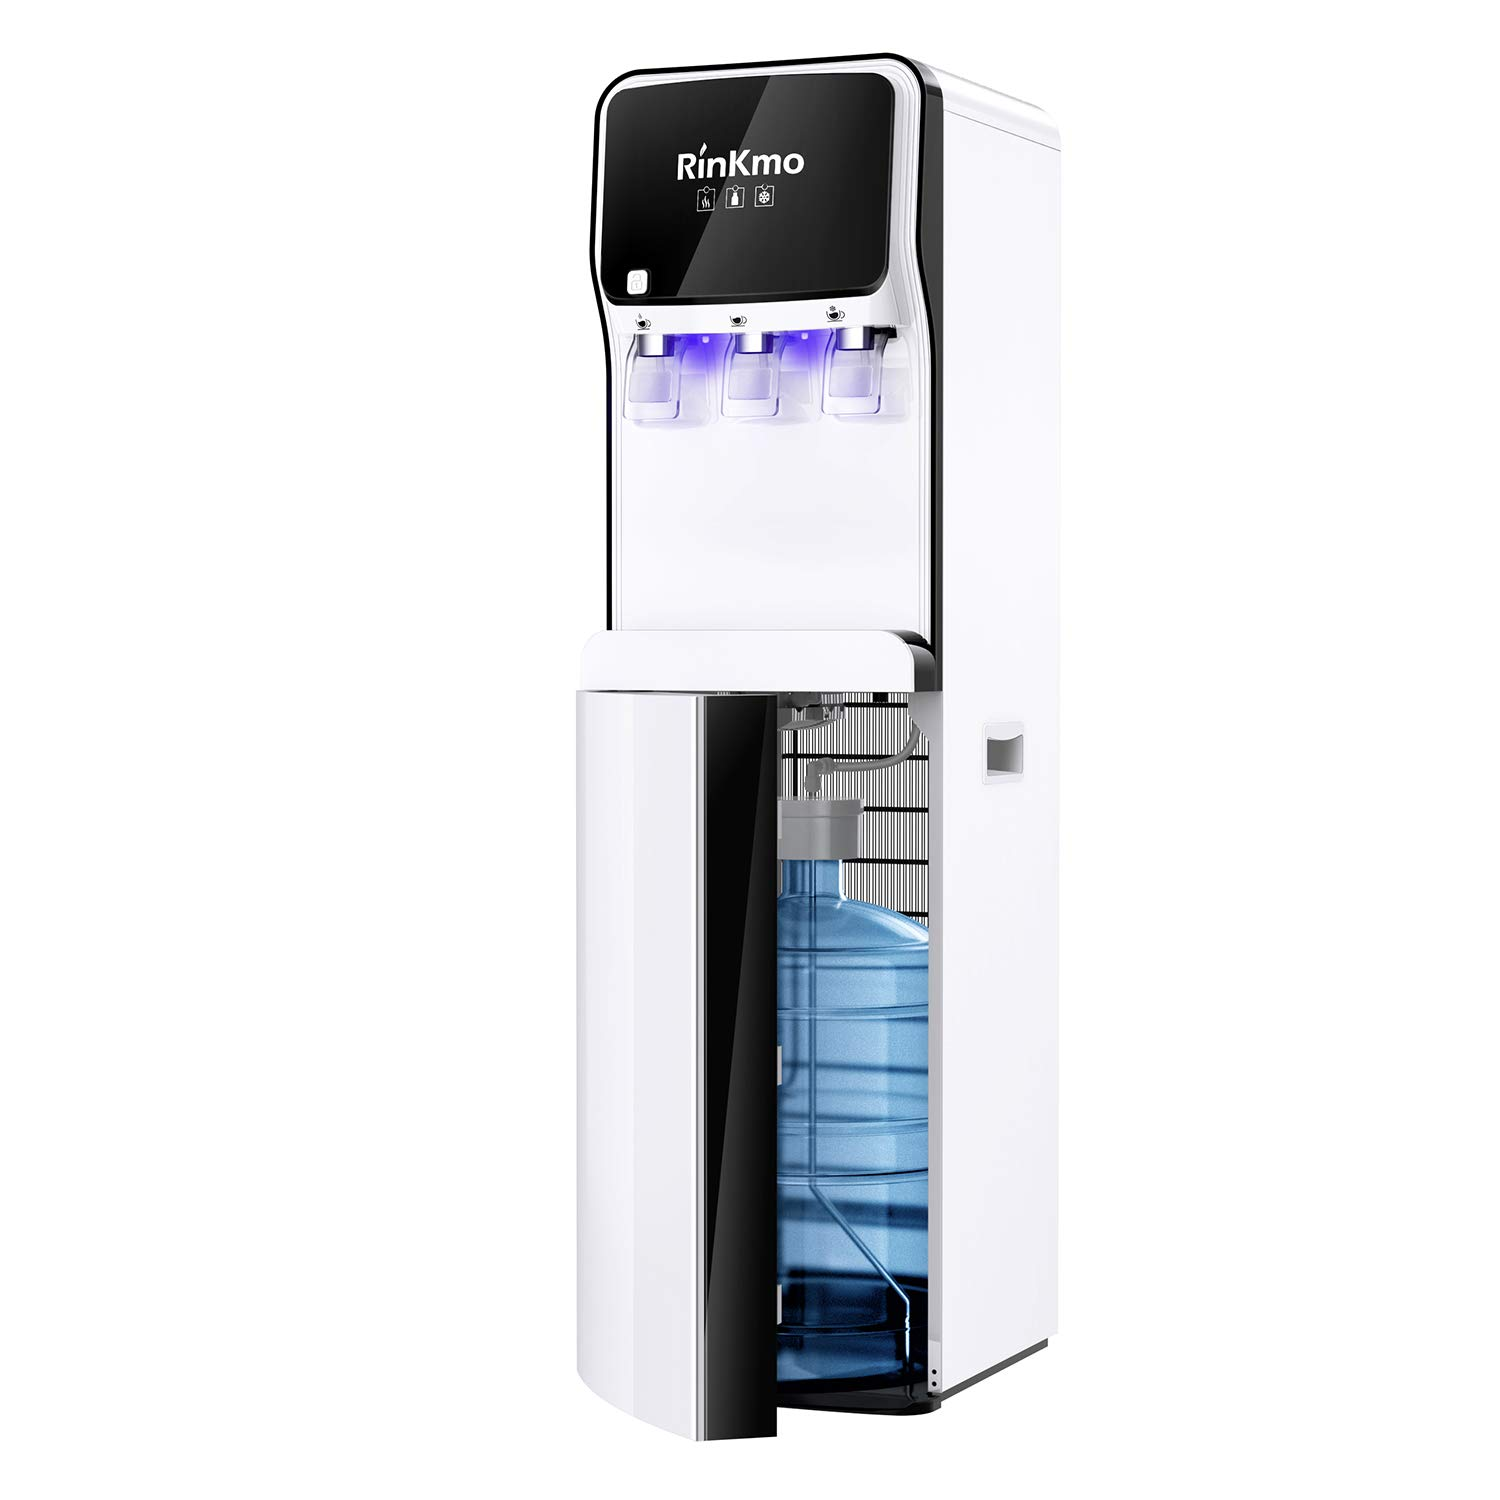 Rinkmo Water Dispenser,Bottom Load Water Cooler with Self Cleaning Function for 3-5 Gallon Bottle,Hot Room Cold 3 Temperatures,Durable Steel Frame,Child Safety Lock,Remvable Drip Tray for Home Office